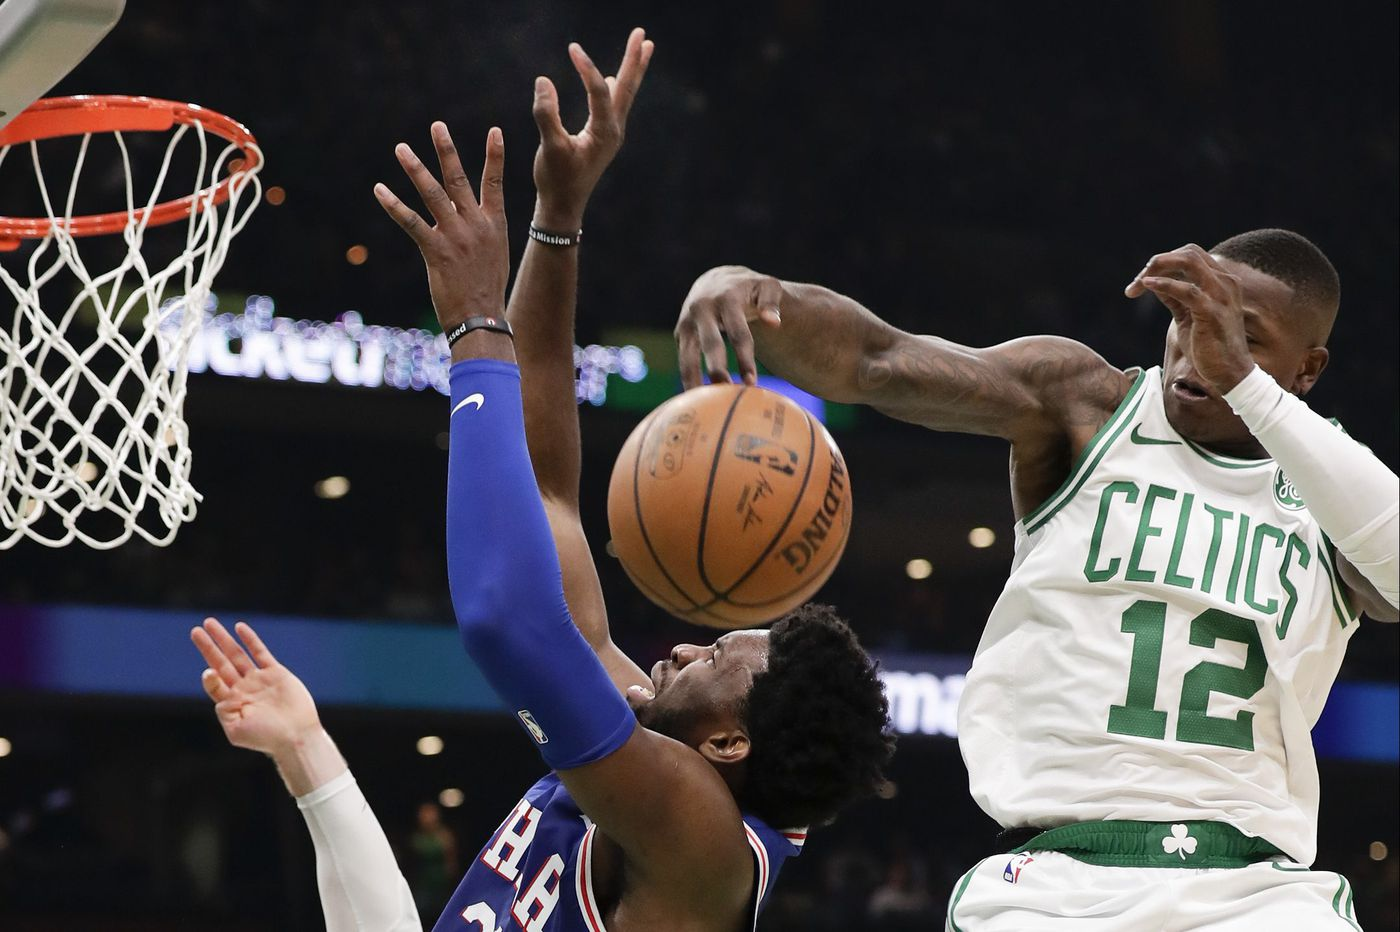 Sixers-Celtics observations, best and worst awards: Ben Simmons, three-point shooting, dismal play